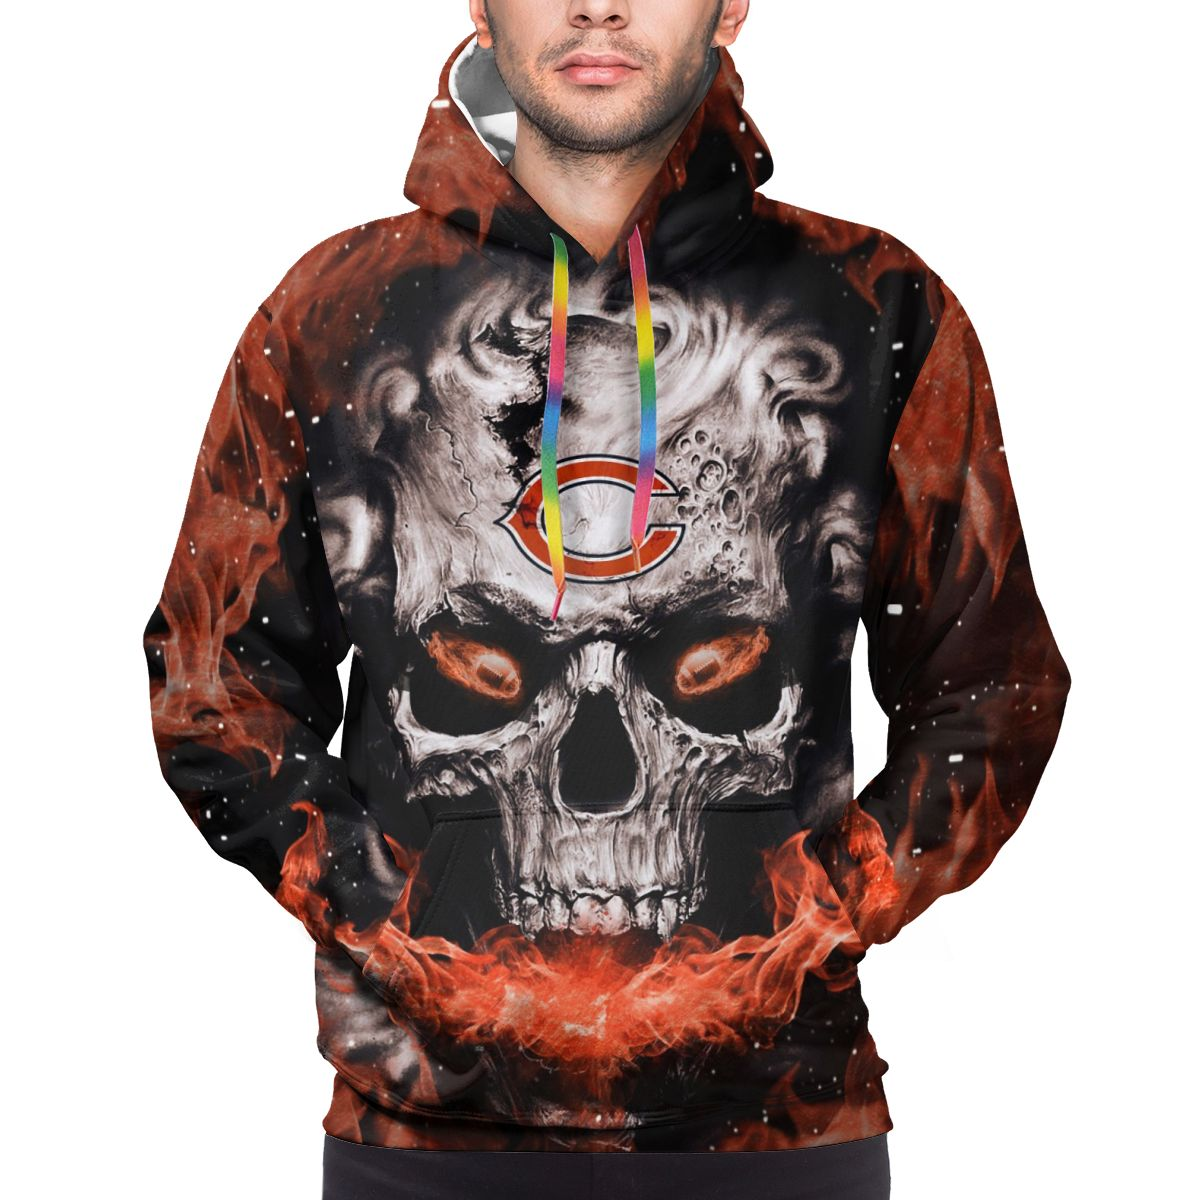 3D Skull Bears Logo Print Hoodies For Men Pullover Sweatshirt